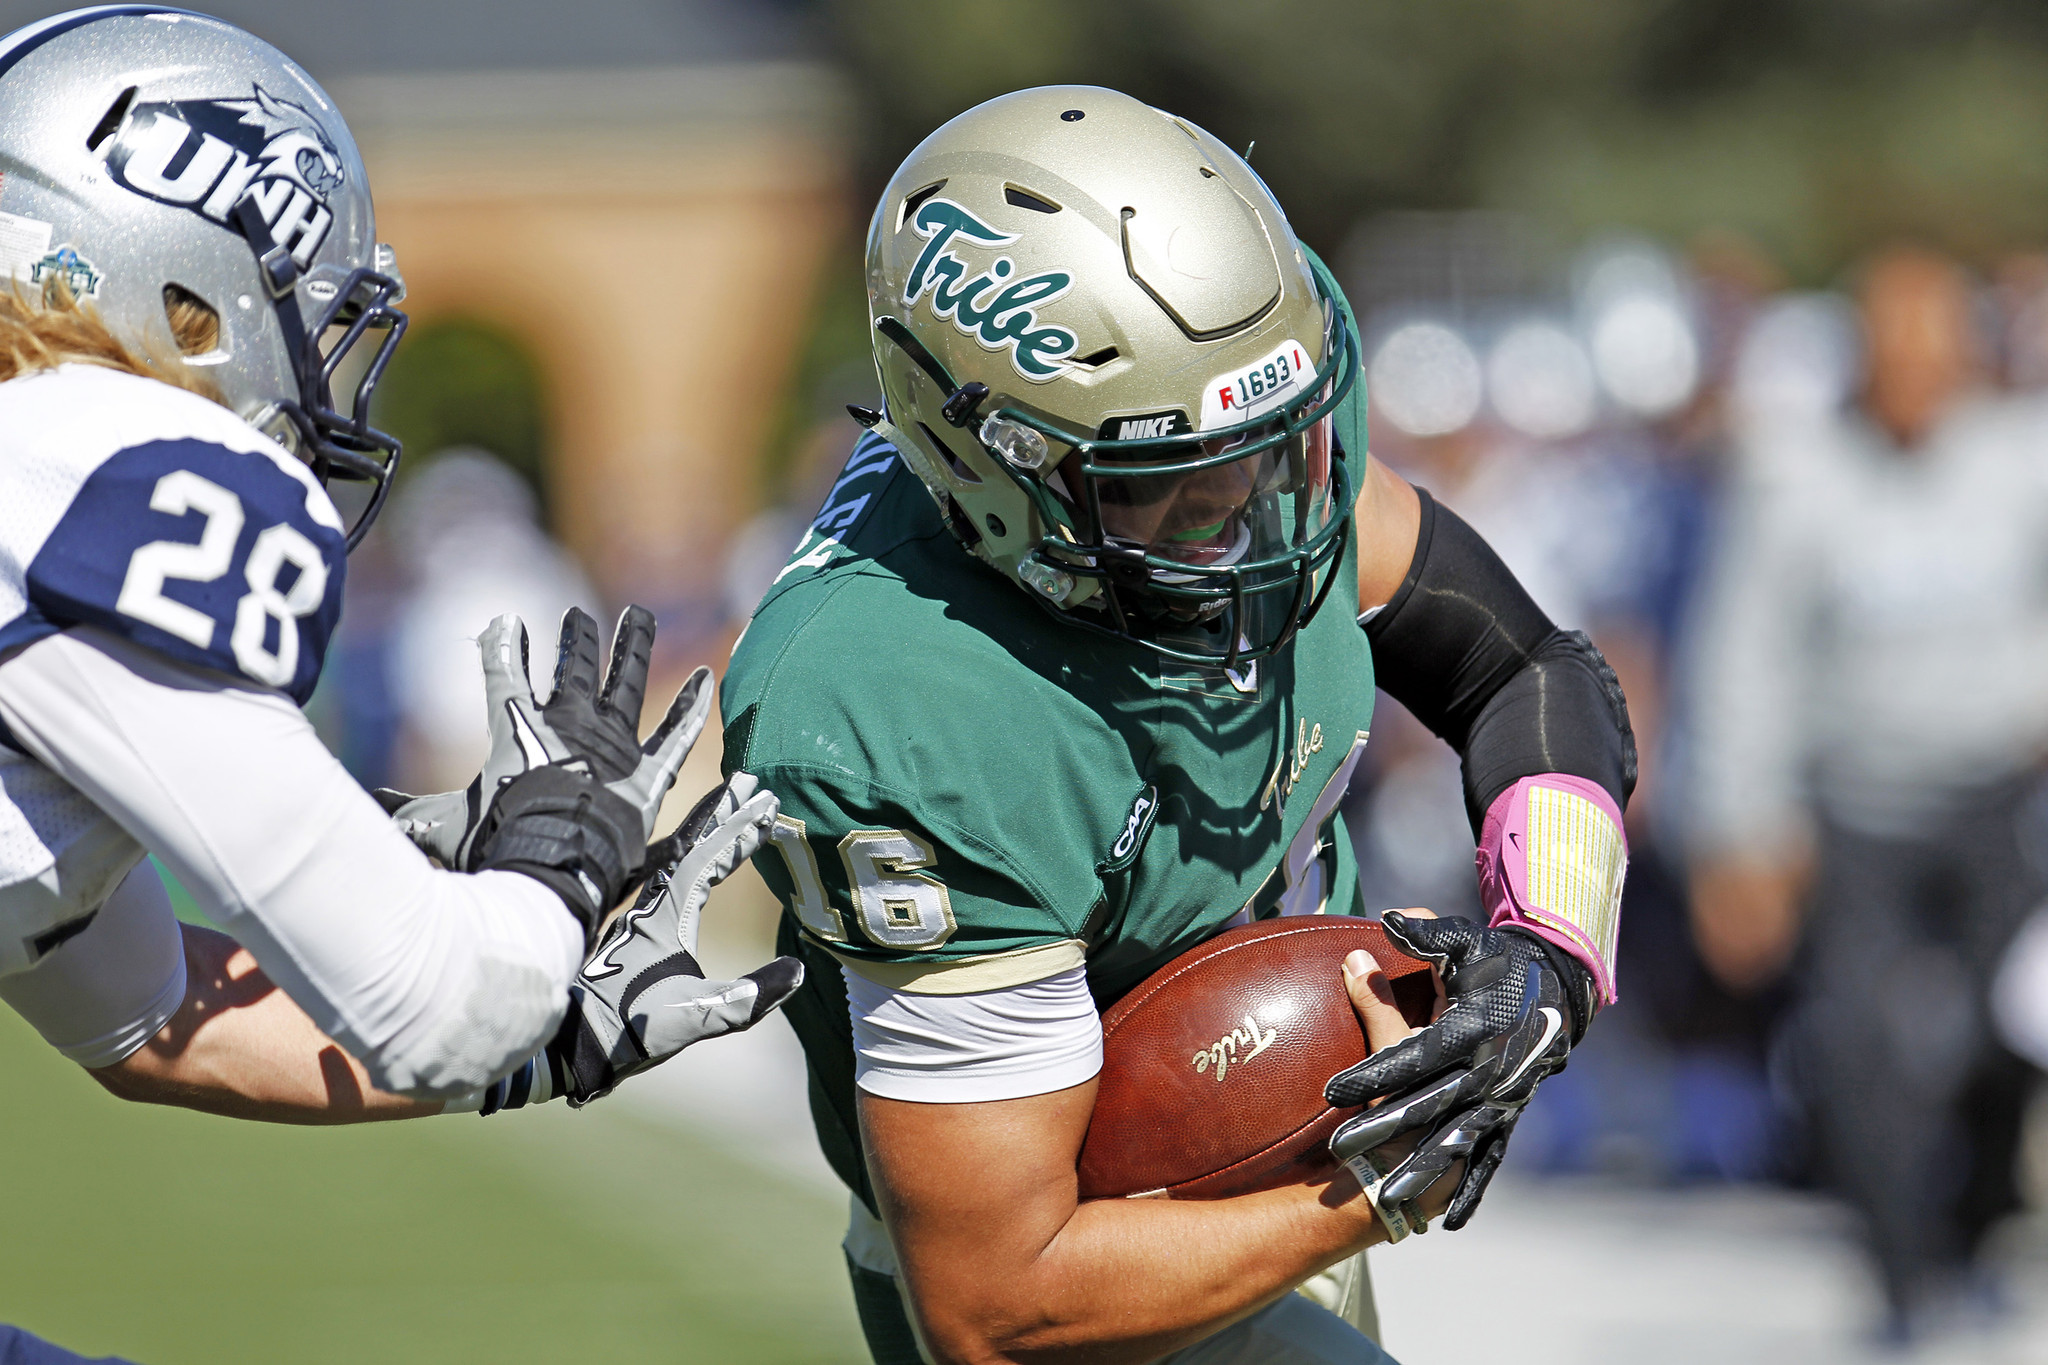 After some tough blows early, William and Mary responds and blows out New Hampshire 34-18. - Daily Press